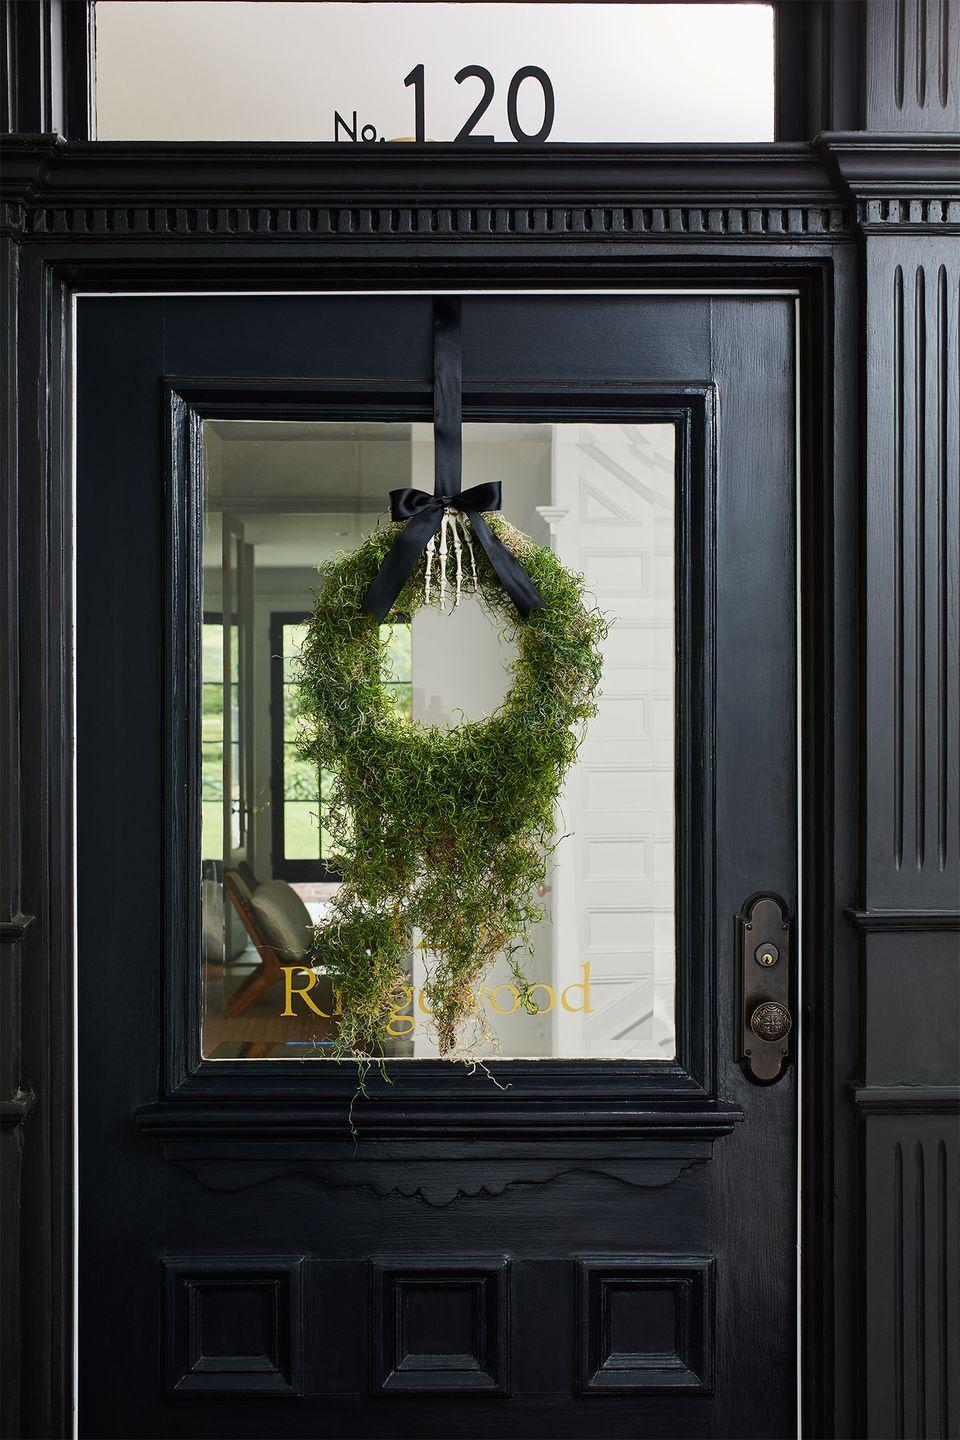 """<p>Take a mossy wreath to the next level by using a plastic skeleton hand and ribbon to hang it from your door. <br></p><p><strong>RELATED:</strong> <a href=""""https://www.goodhousekeeping.com/holidays/halloween-ideas/g79/diy-halloween-wreaths/"""" rel=""""nofollow noopener"""" target=""""_blank"""" data-ylk=""""slk:Scary-Good Halloween Wreaths to Impress Trick-or-Treaters"""" class=""""link rapid-noclick-resp"""">Scary-Good Halloween Wreaths to Impress Trick-or-Treaters</a></p>"""